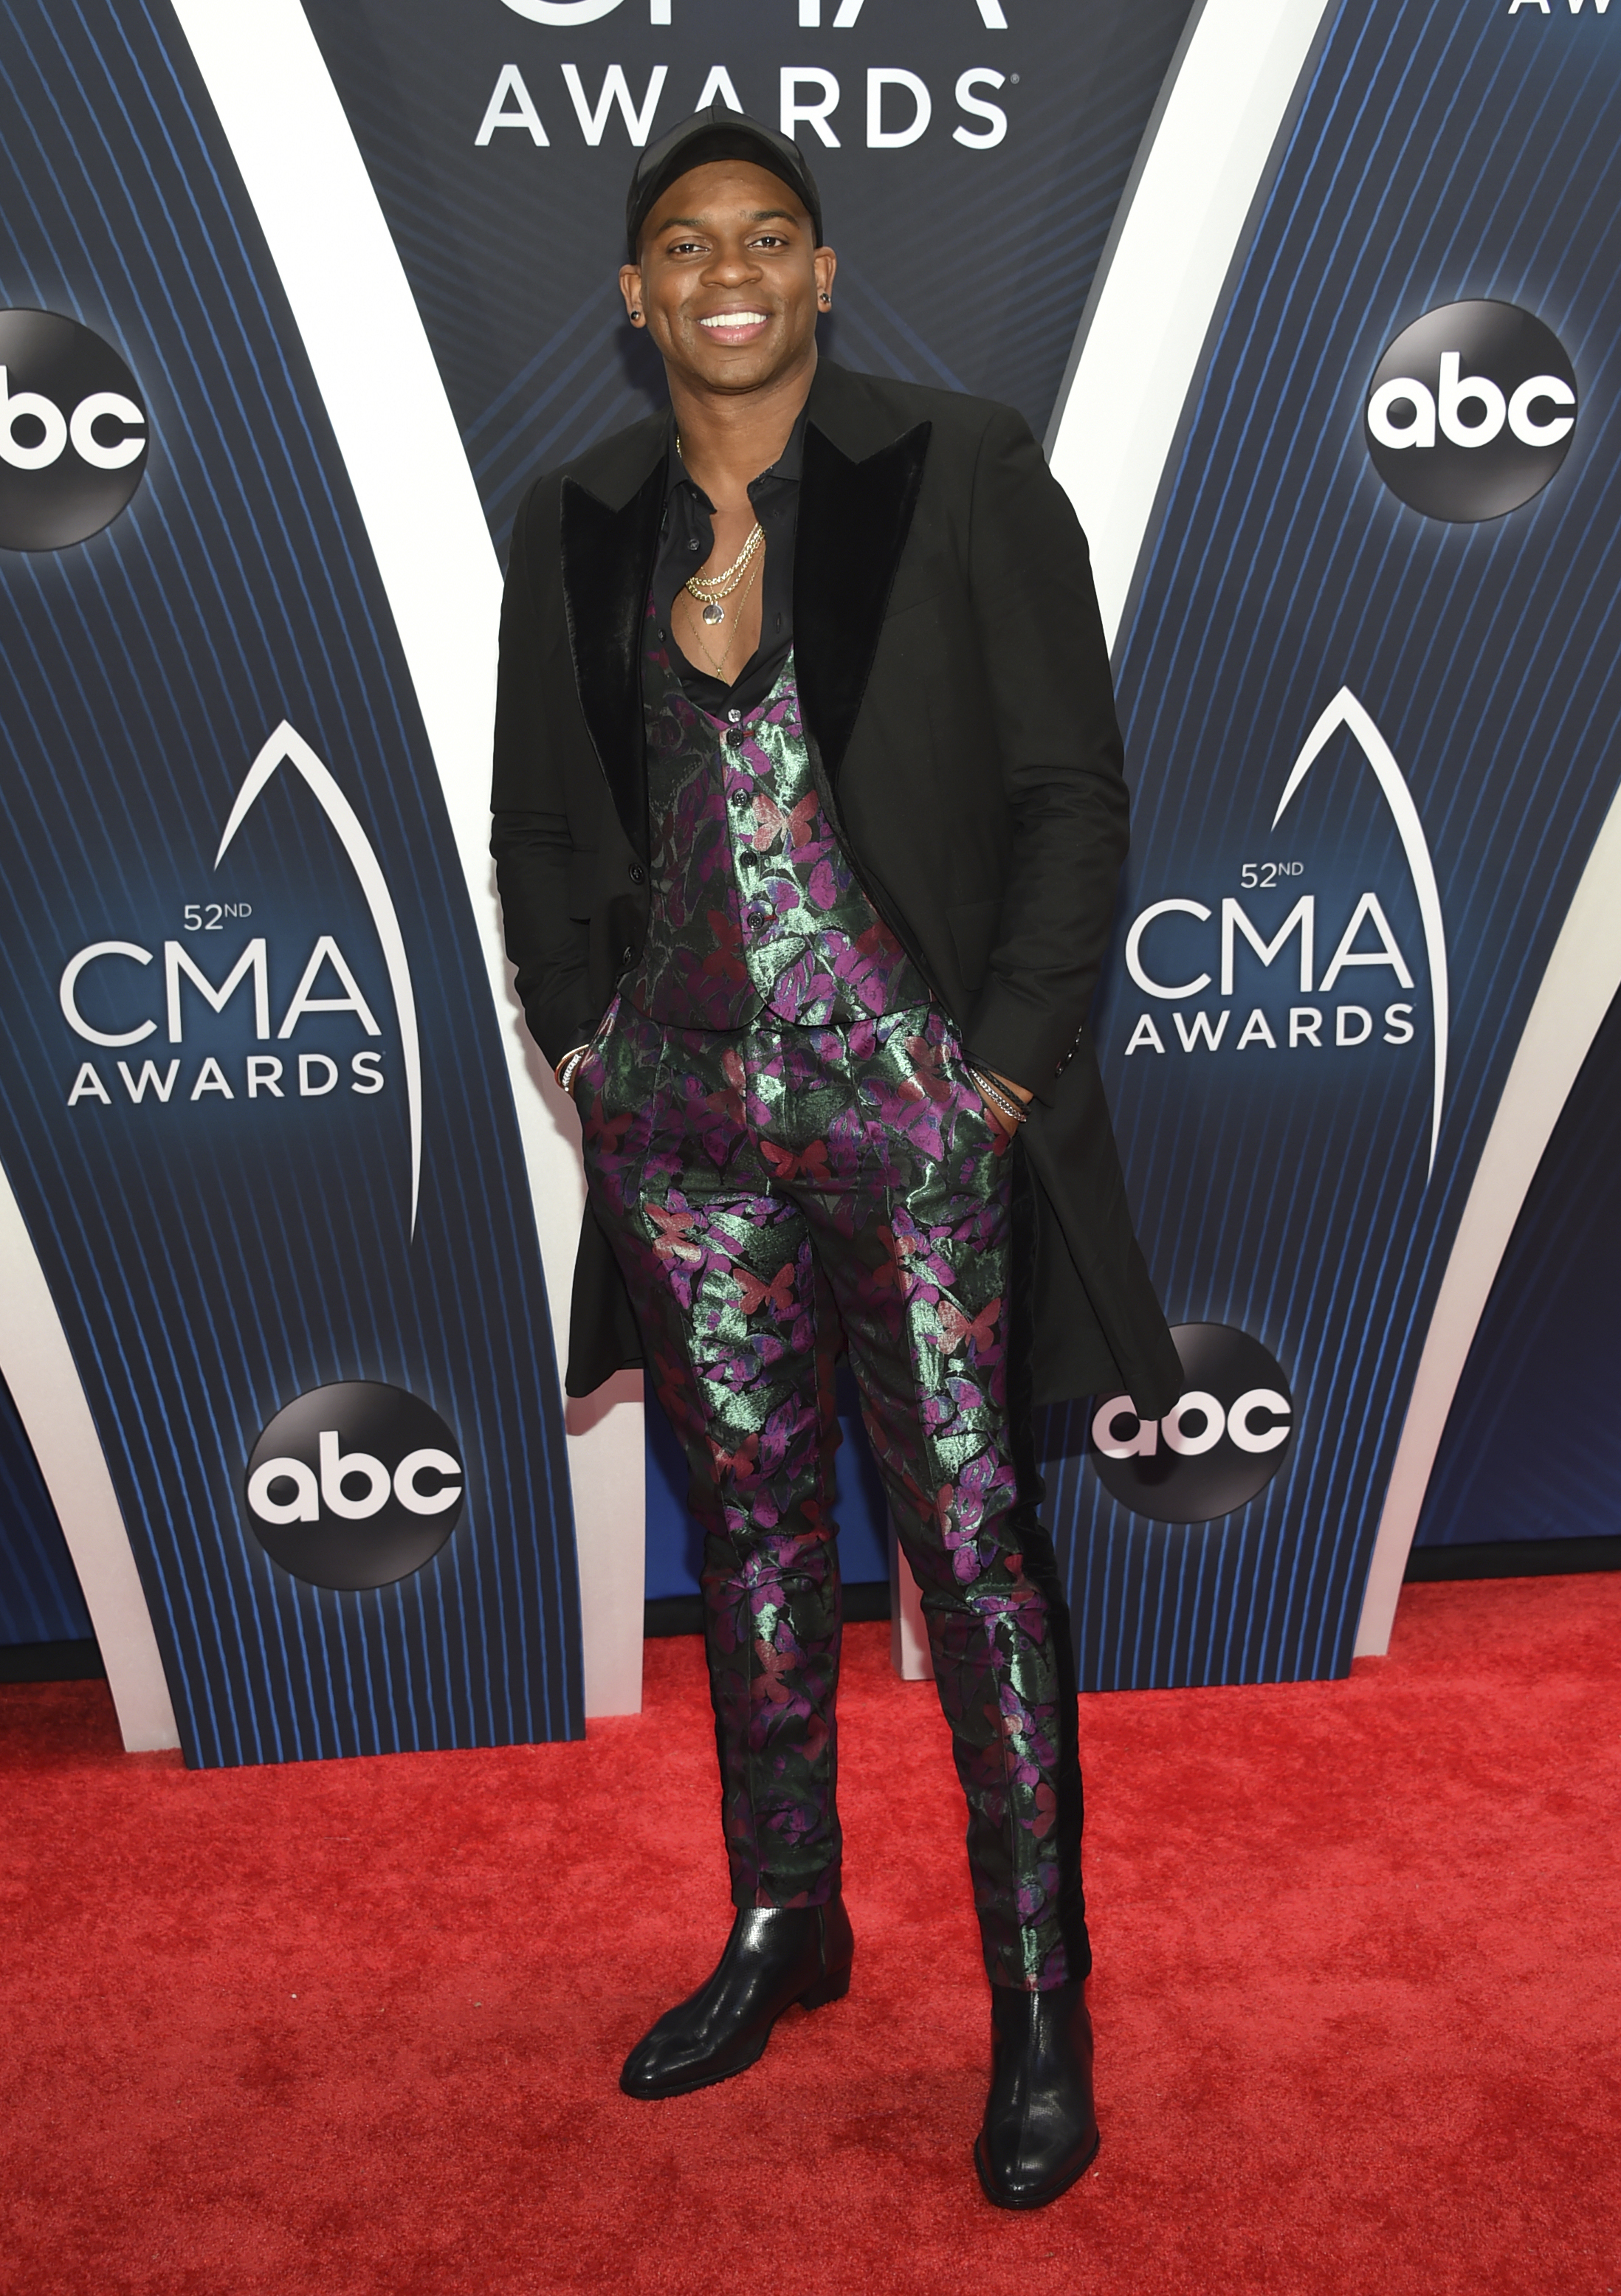 "<div class=""meta image-caption""><div class=""origin-logo origin-image ap""><span>AP</span></div><span class=""caption-text"">Jimmie Allen arrives at the 52nd annual CMA Awards at Bridgestone Arena on Wednesday, Nov. 14, 2018, in Nashville, Tenn. (Photo by Evan Agostini/Invision/AP) (Evan Agostini/Invision/AP)</span></div>"